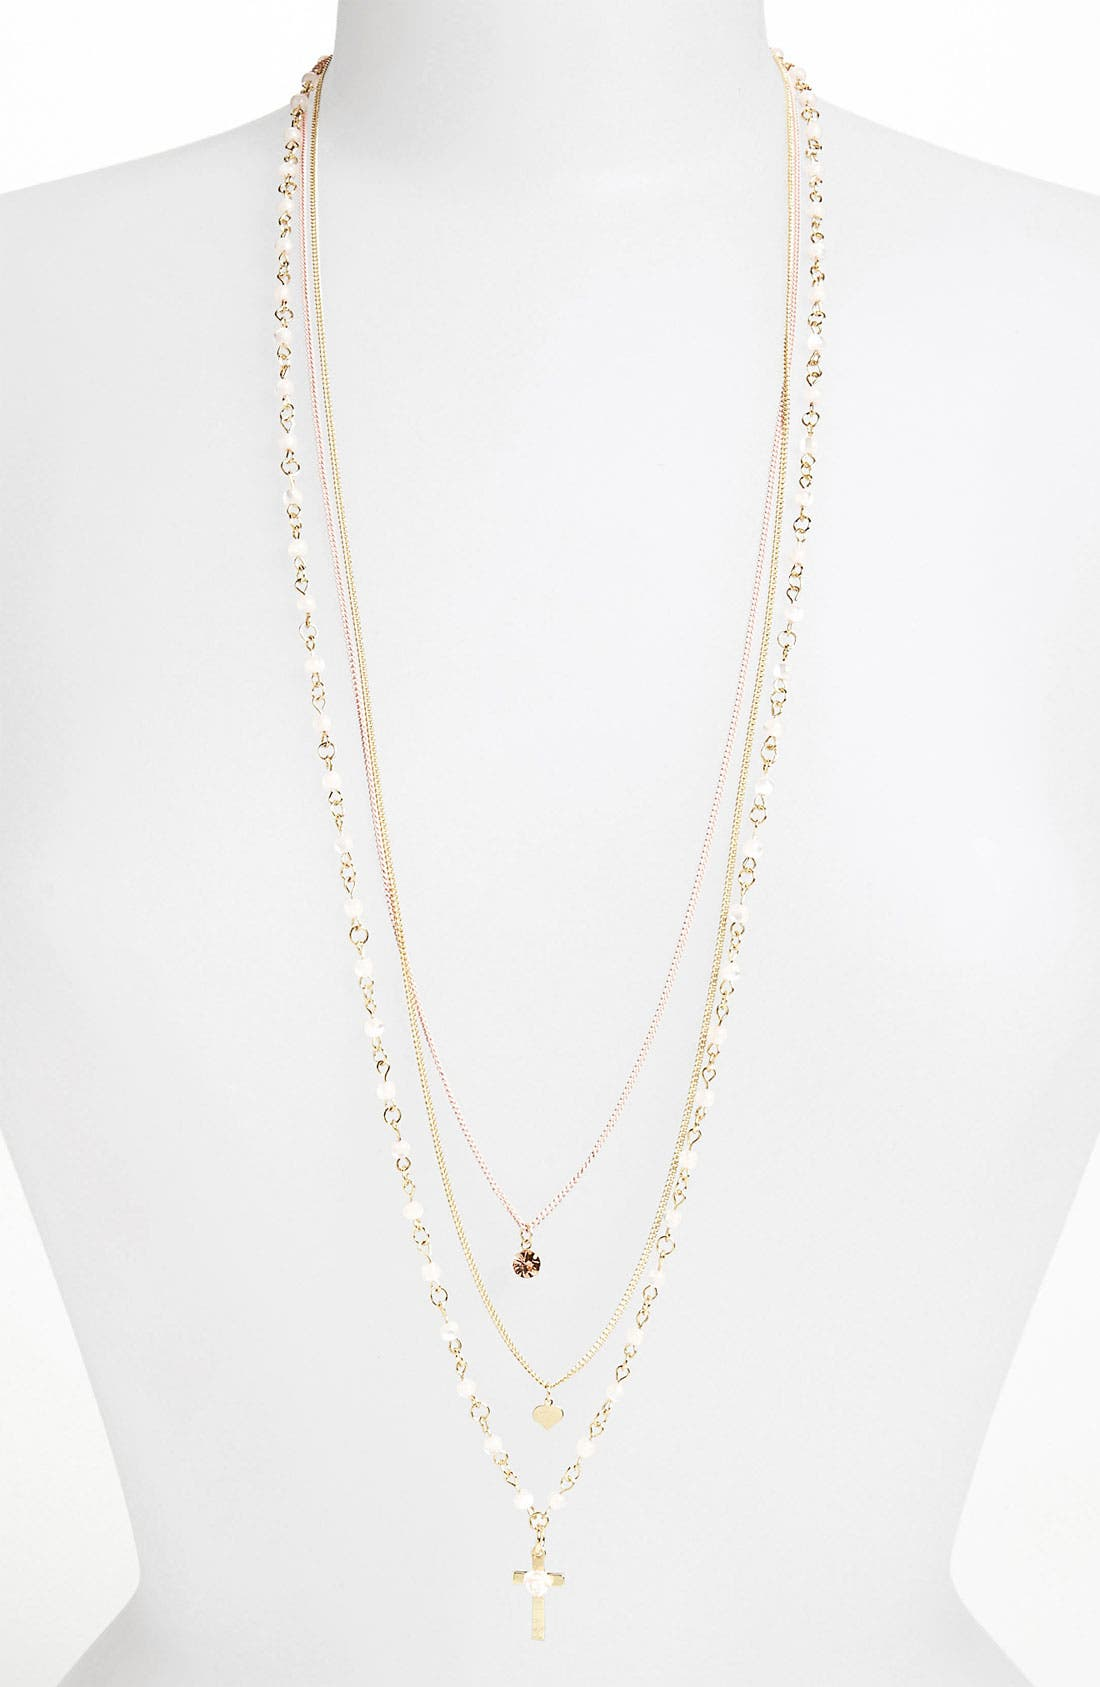 TOPSHOP '3 Row Charm' Multistrand Necklace, Main, color, 951